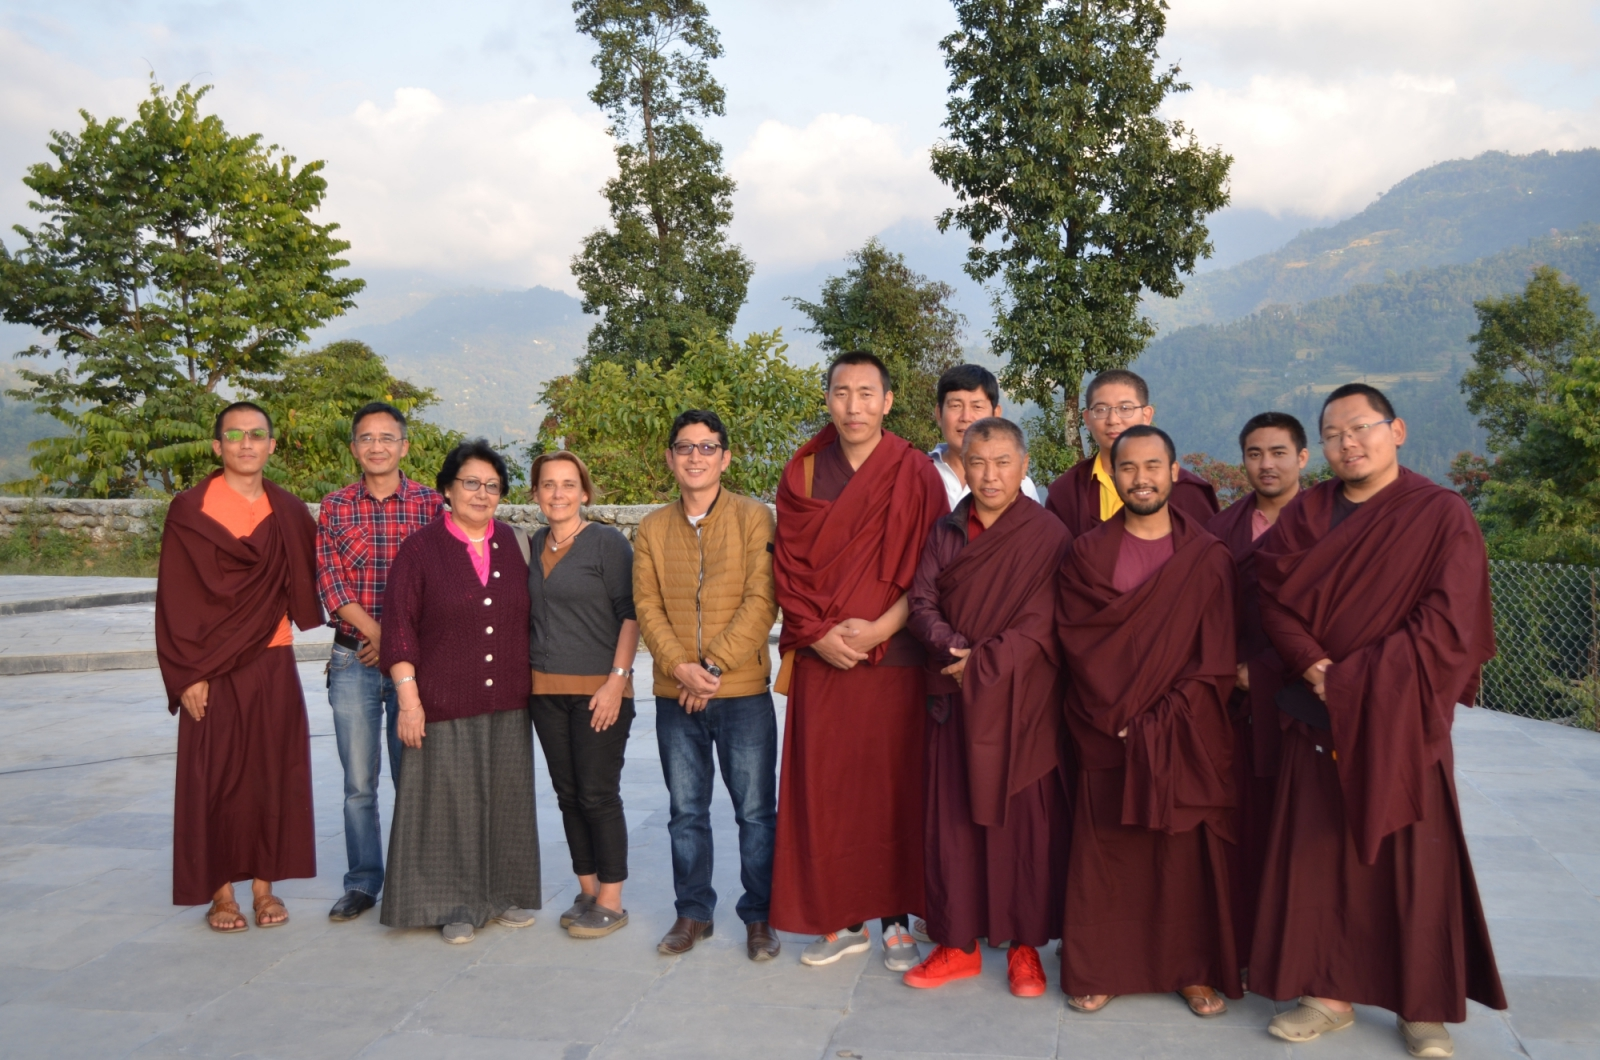 In the photo left to right: Tsultrim Dargay, Yeshey Jungney, Diki Wangchuk, Diane Brodkorb, Dr. Tsewang Gyatso, Khenpo Wangdu, Dawa Waiba, Tsultrim Jinpa, Tsultrim Drakpa, Tsultrim Sonam and Drimay Dawa